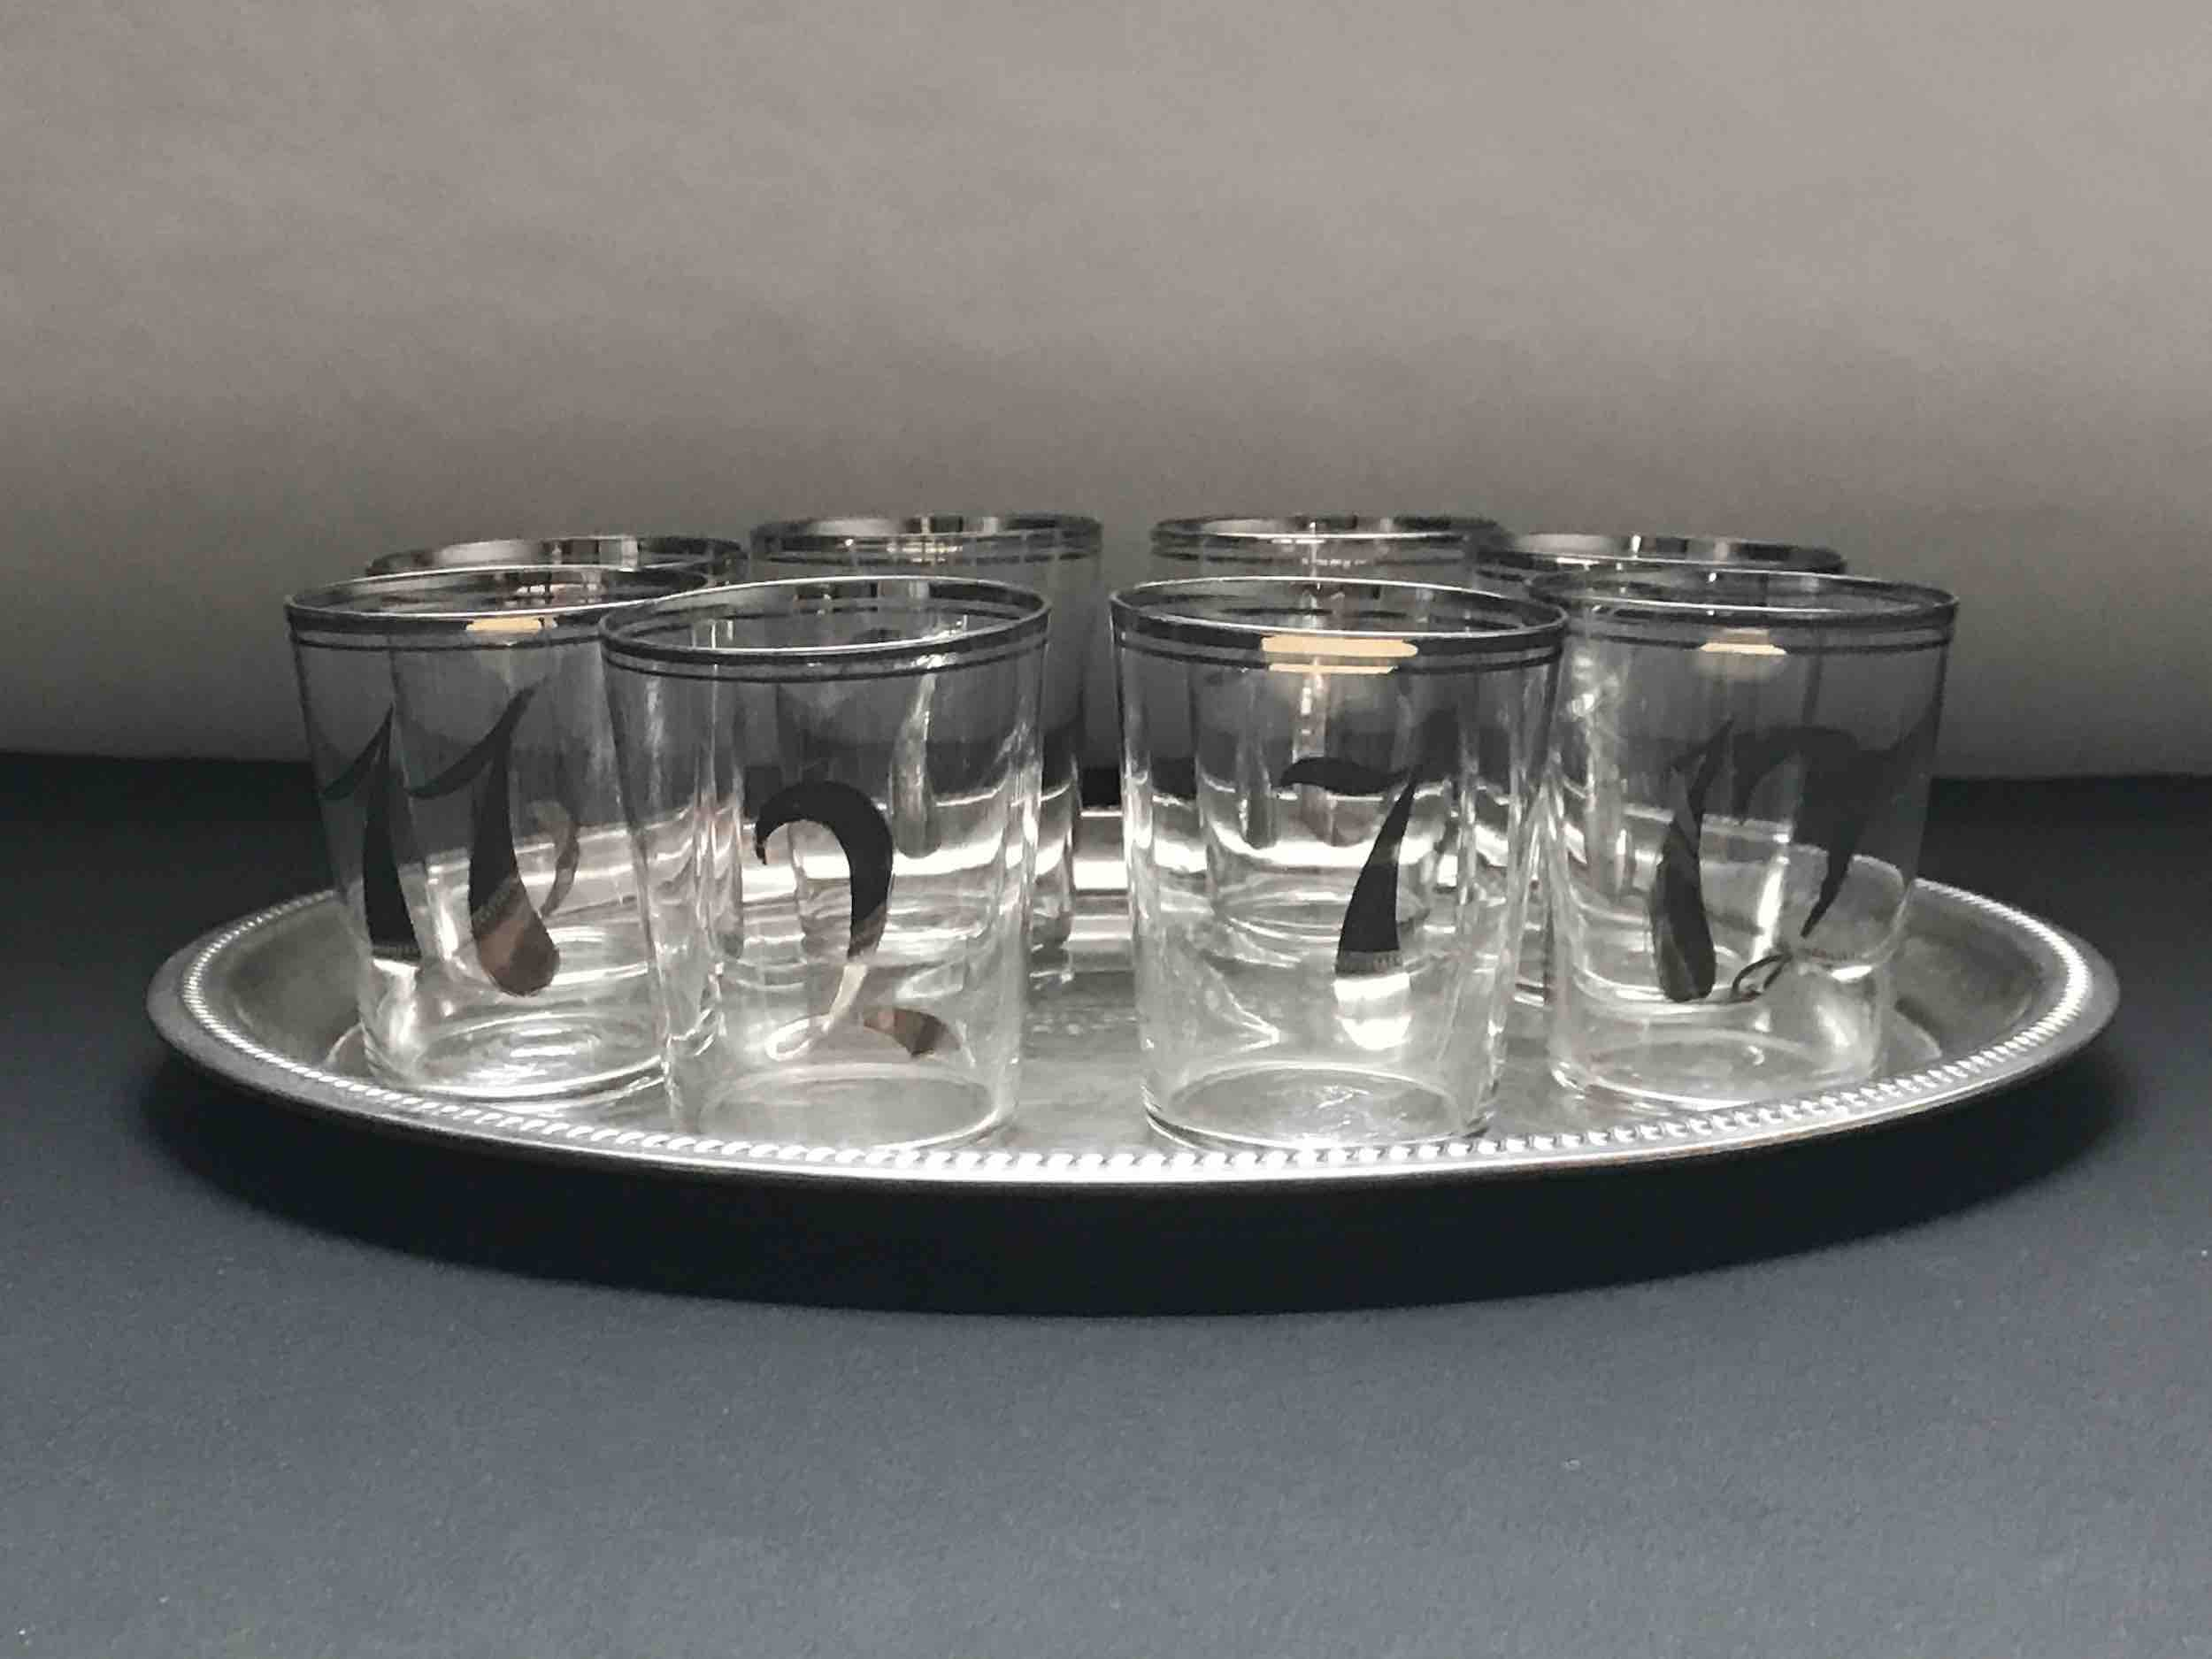 "#17: Eight tumblers hand-numbered in silver on platter engraved ""Betty Crocker Chiffon Cake Award, First Prize."" 3"" x 11"""